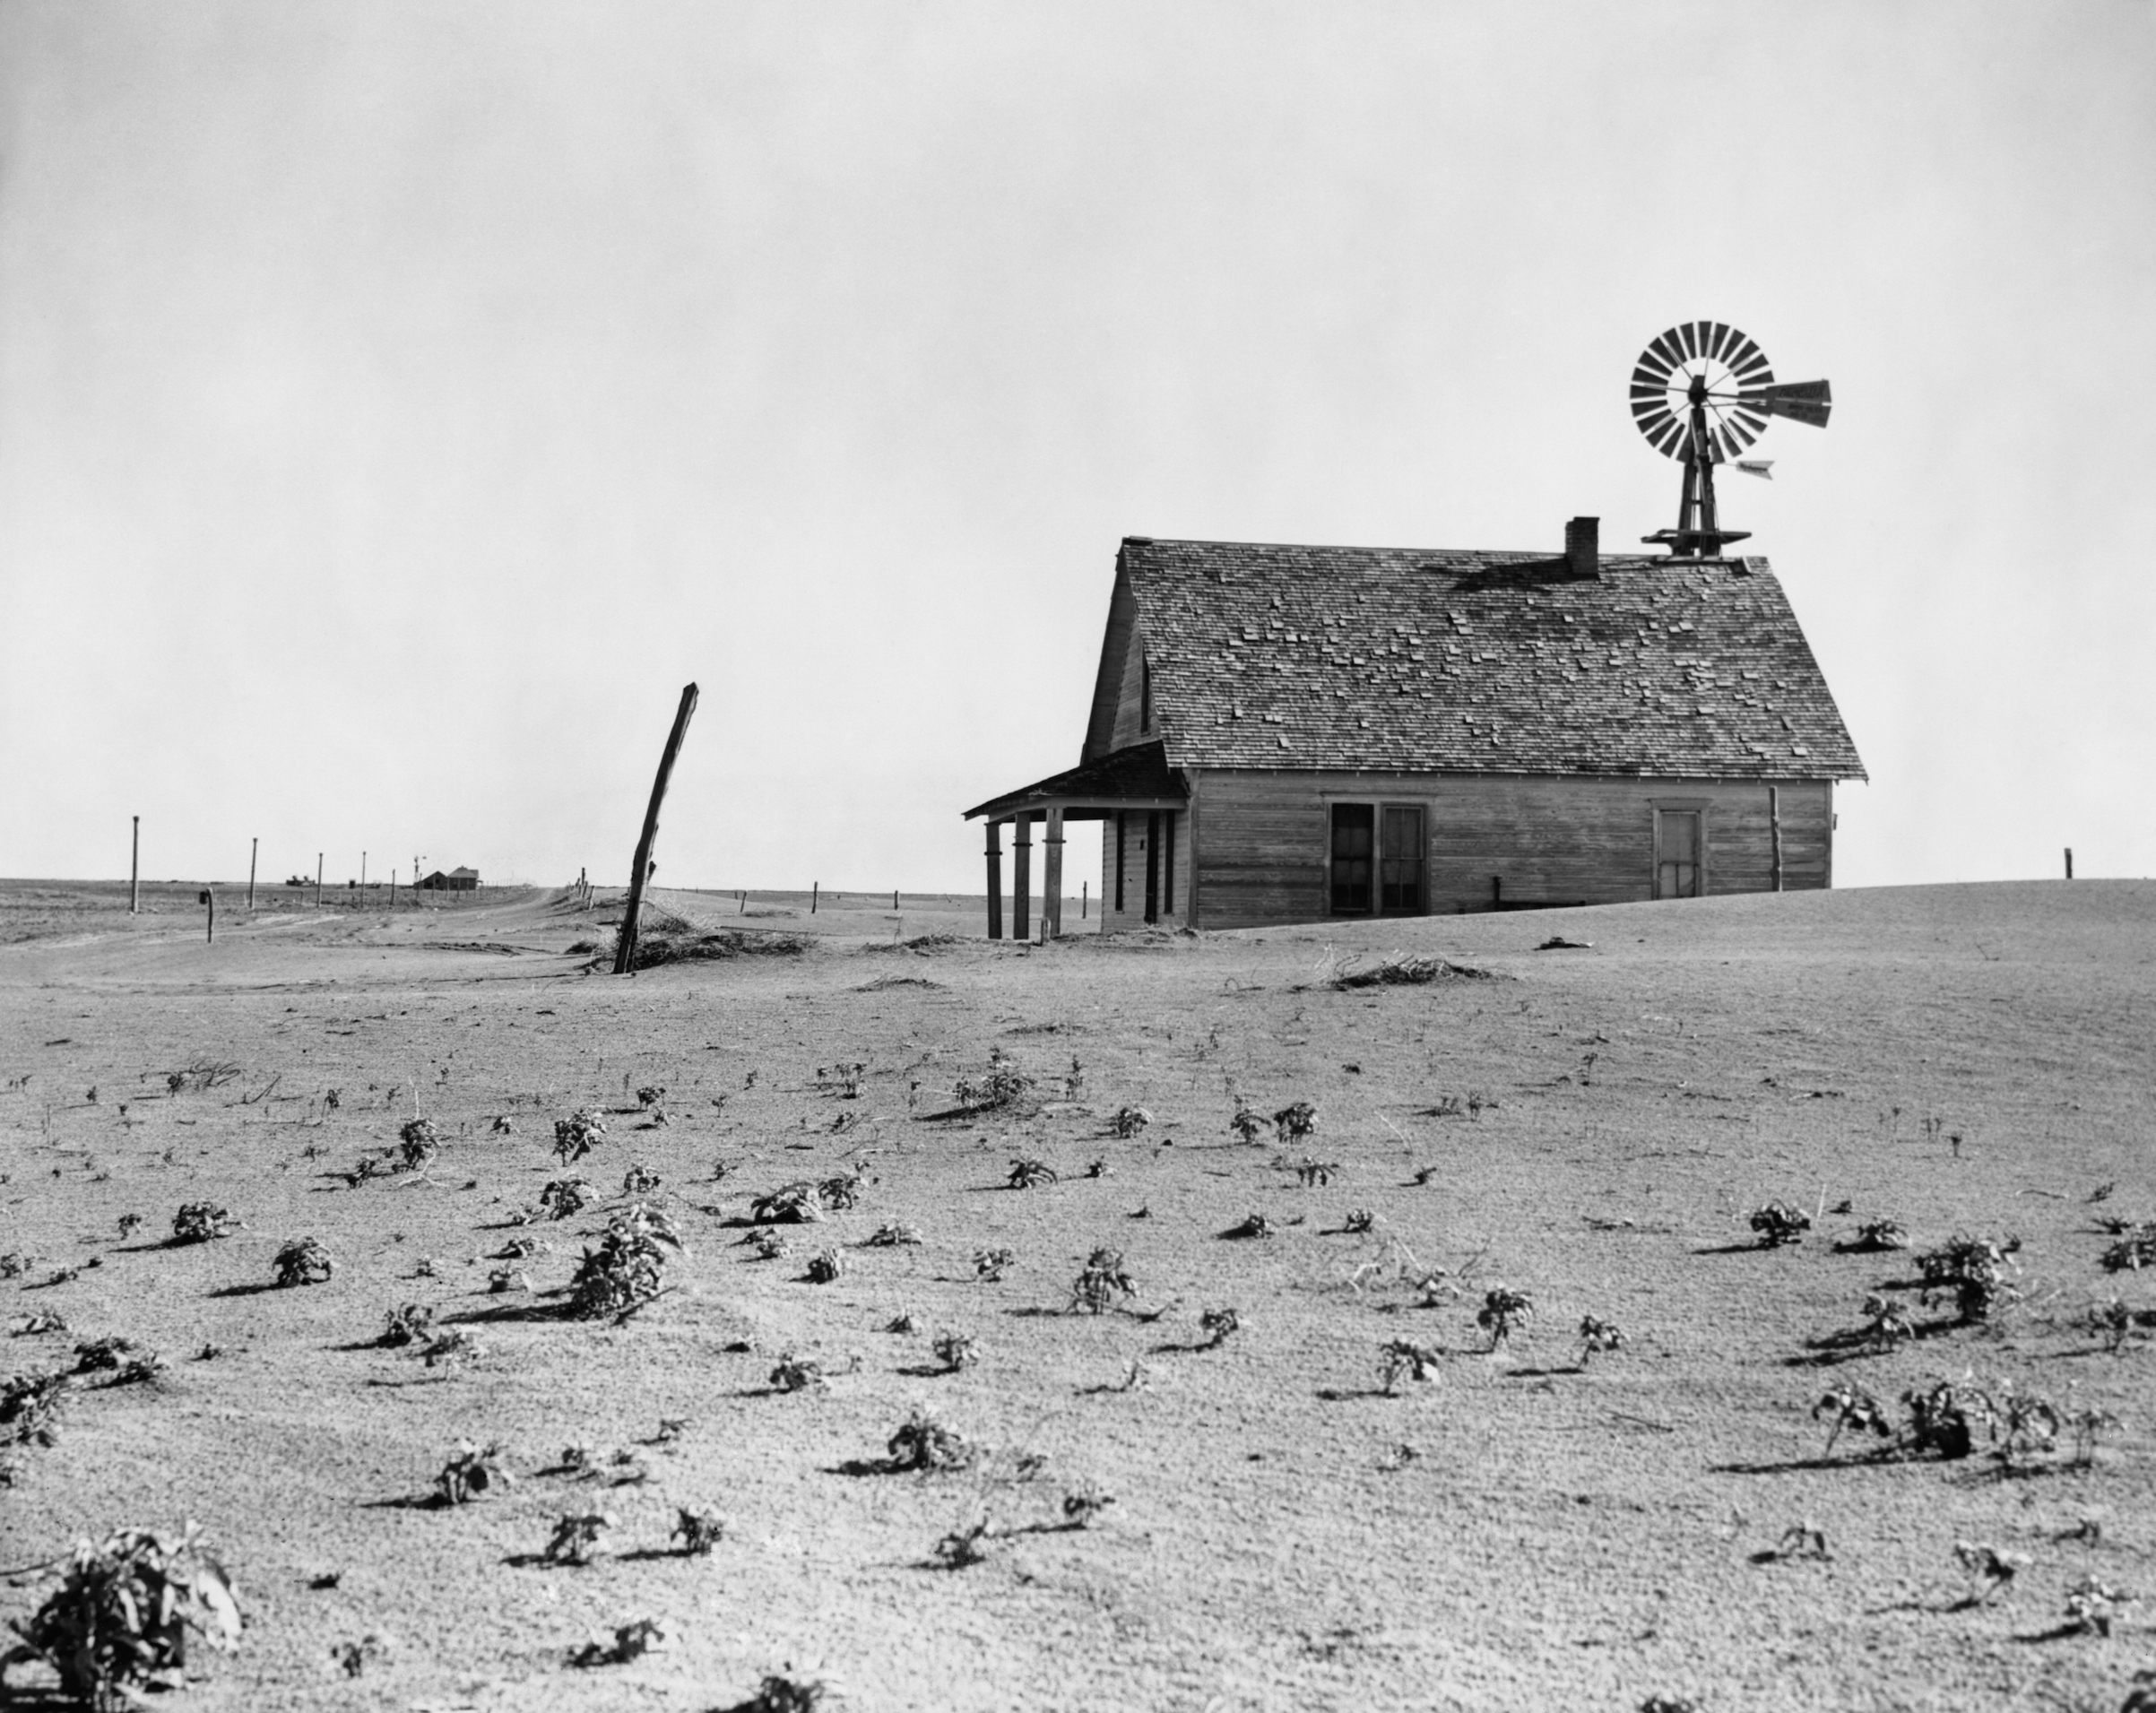 An abandoned farm house in Texas in the late 1930s.